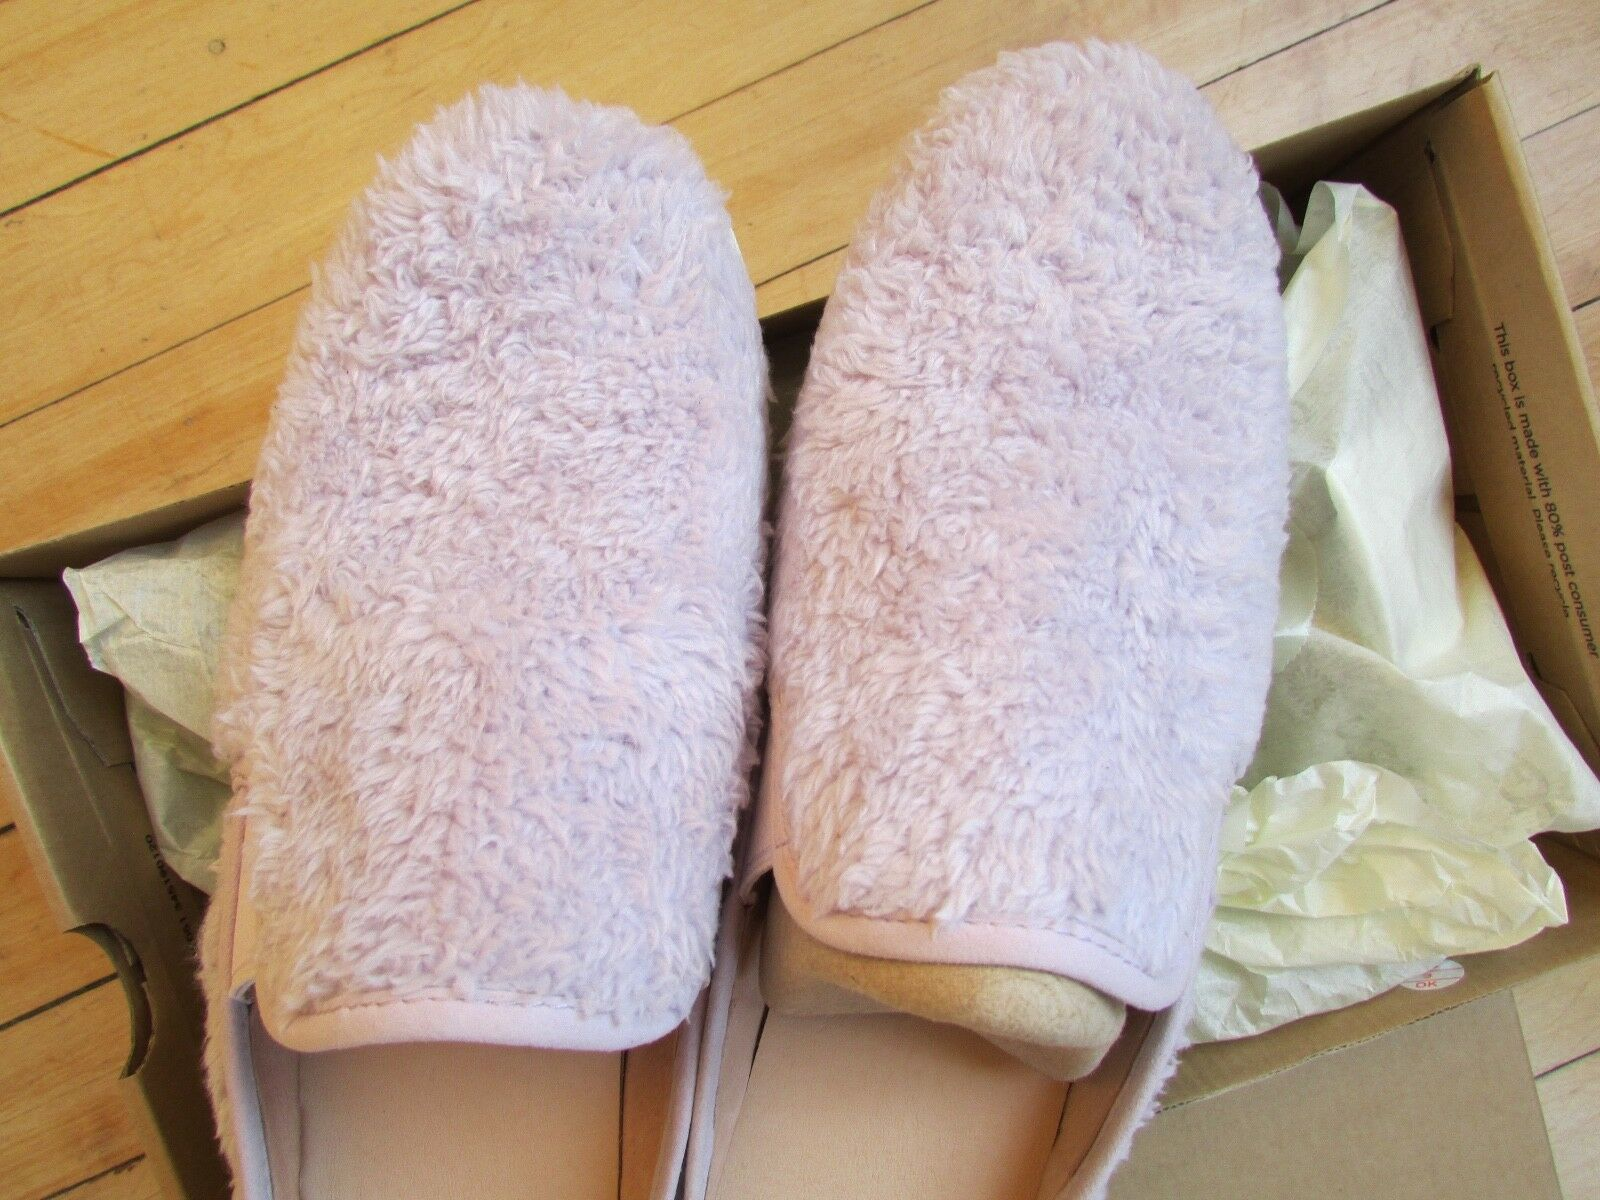 UGG Slippers Luci Slip On Sneakers Lavender fog Size 11 NEW image 4